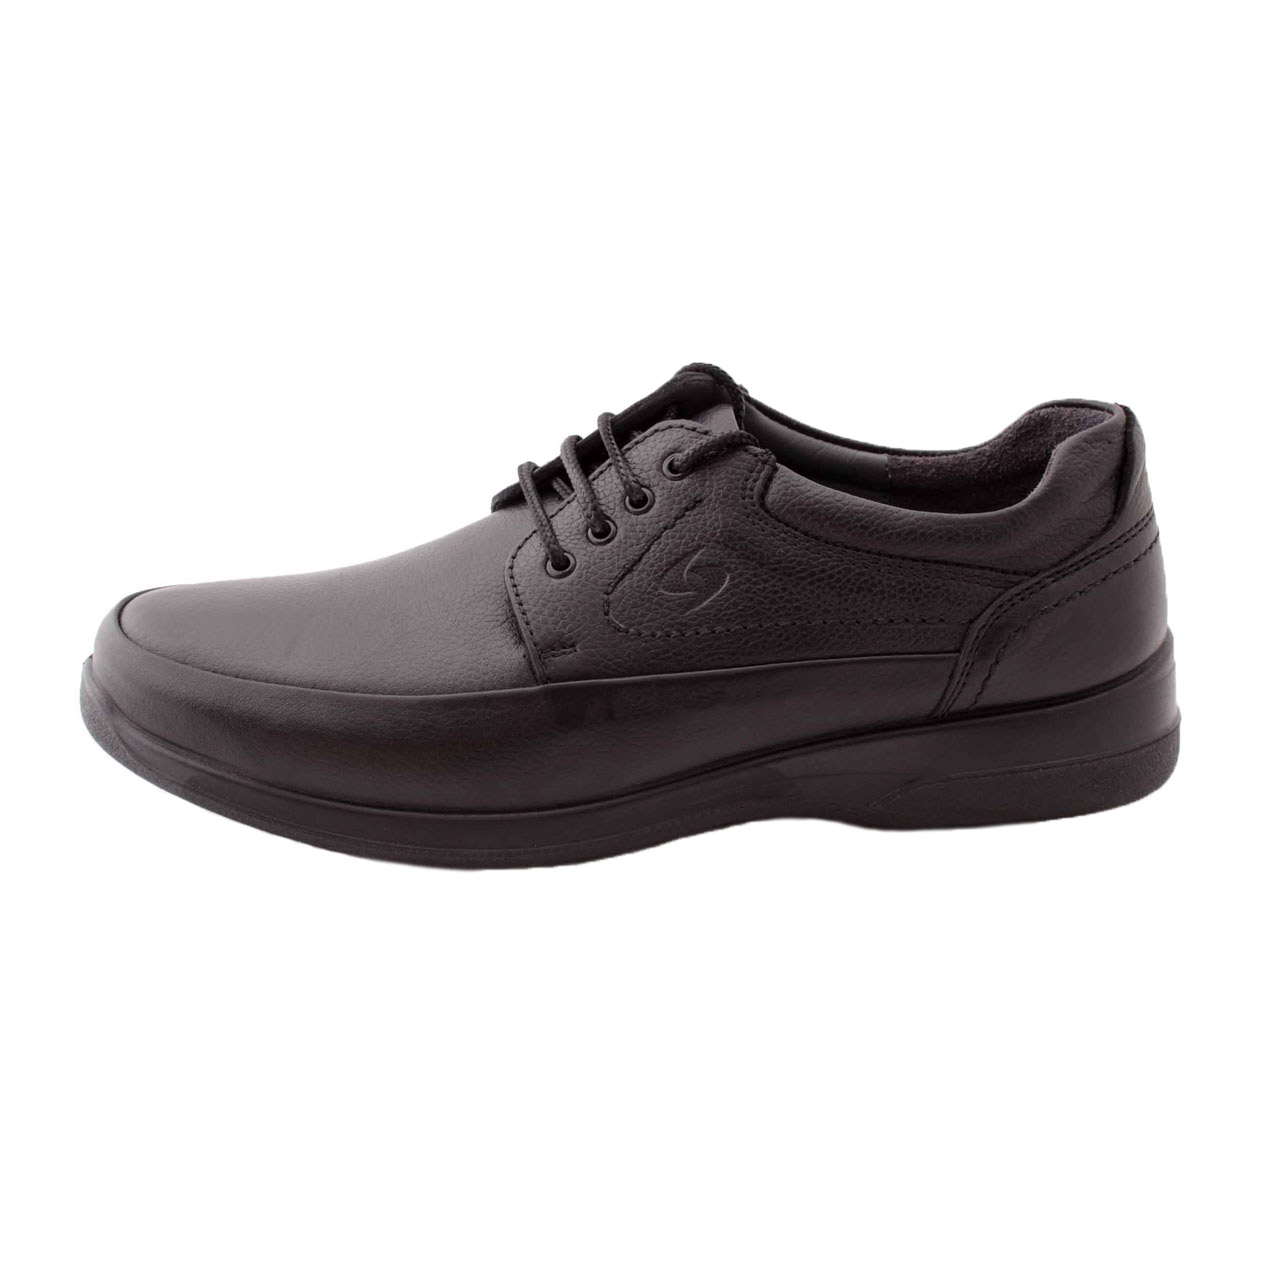 SAINACHARM leather men's casual shoes , M102  Model